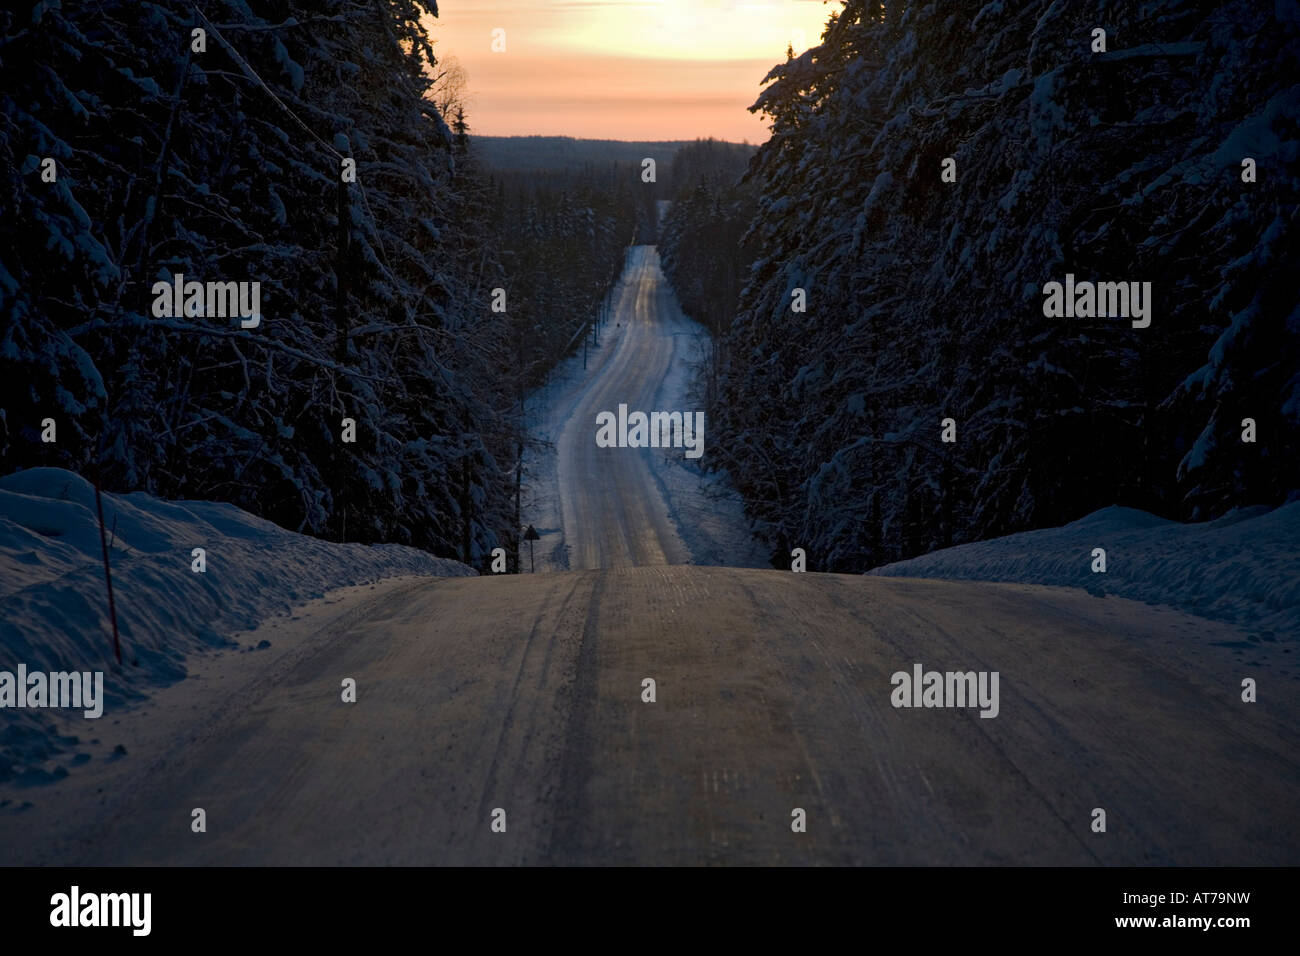 Scene of an empty, icy country road through forest at Winter at evening Finland Stock Photo